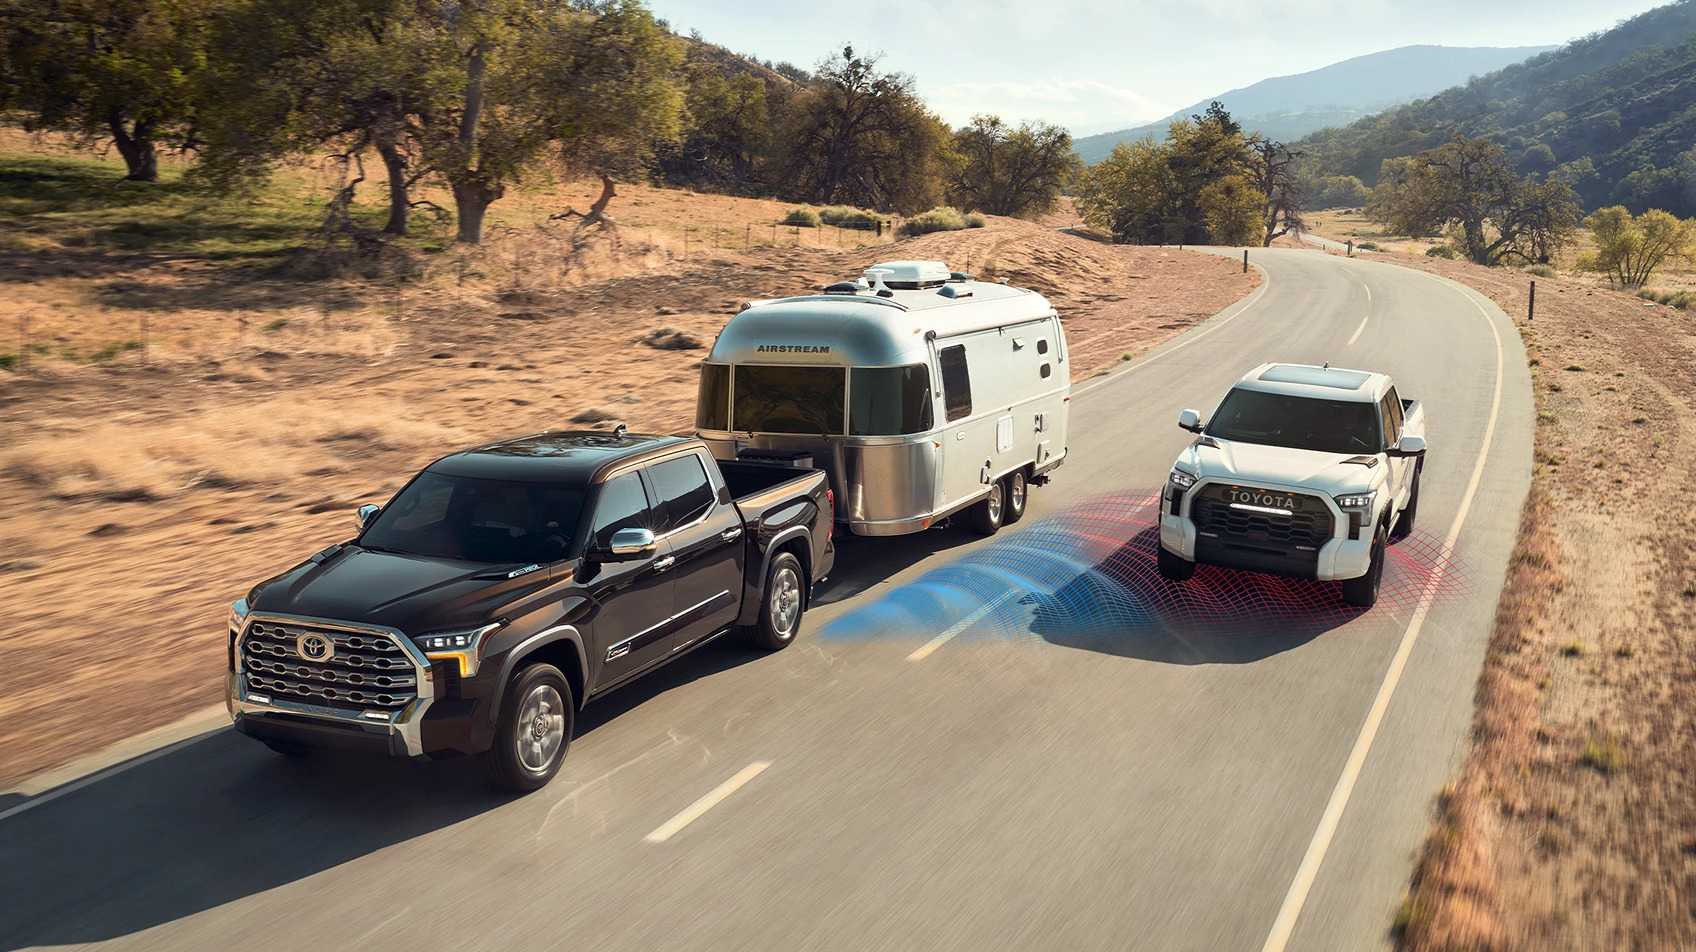 2022 Toyota Tundra safety features